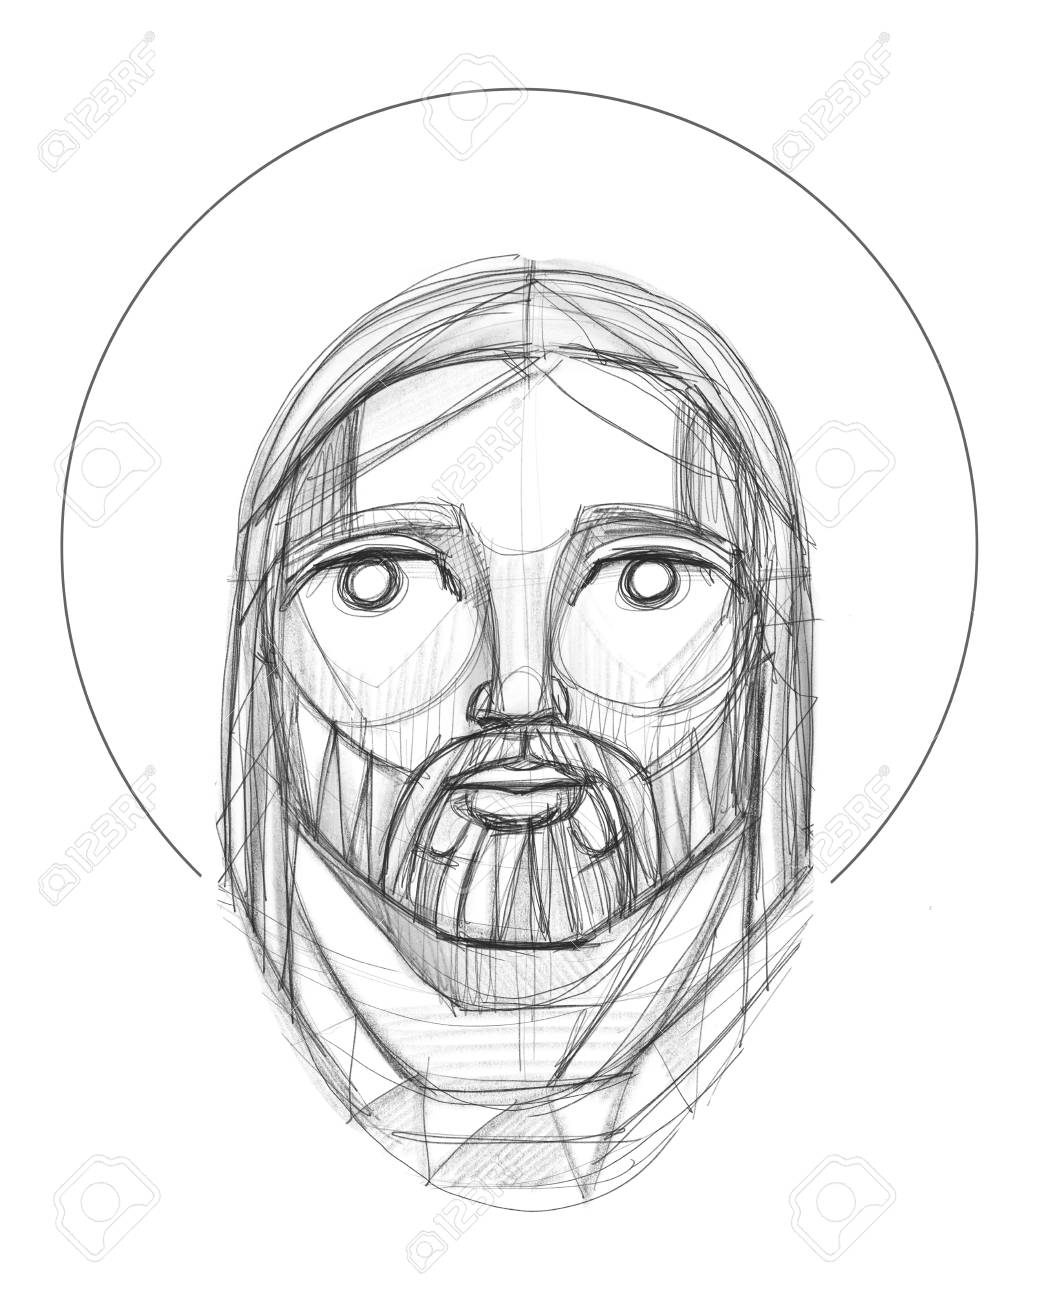 Hand drawn pencil illustration or drawing of jesus christ face in an indigenous style stock illustration